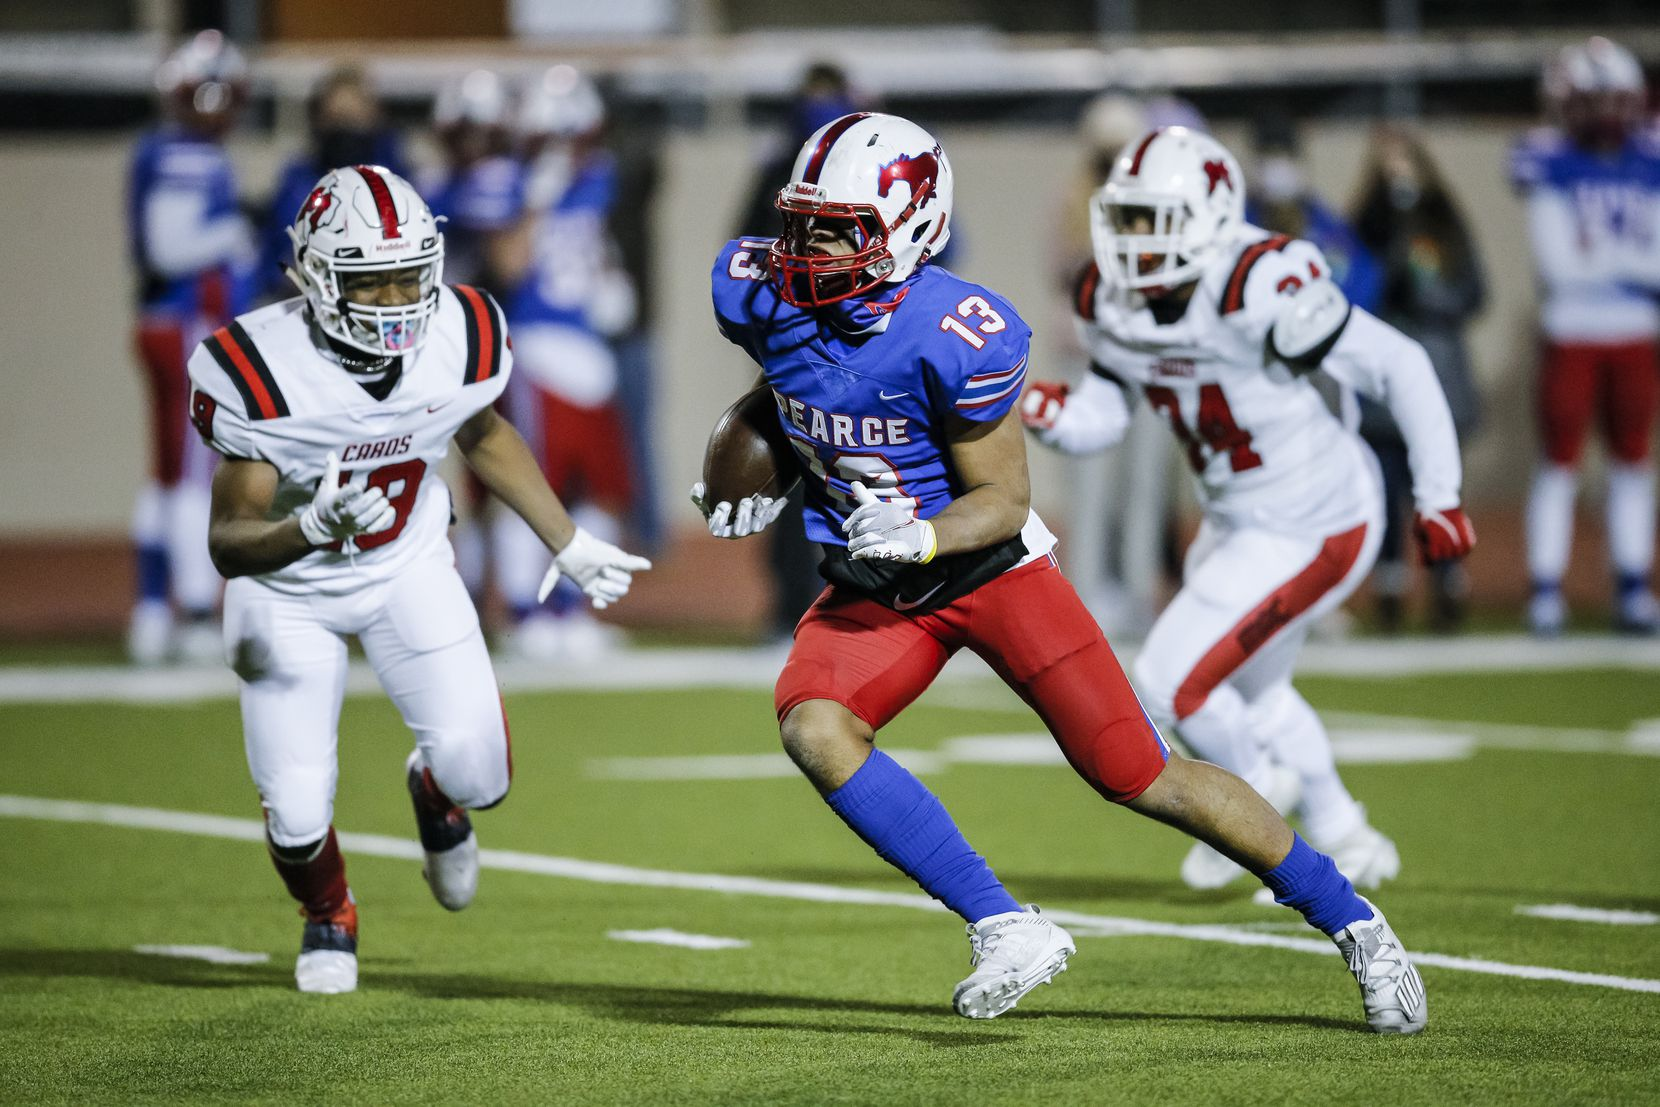 JJ Pearce junior wide receiver Oliver Crawford (13) carries the ball during the first half of a high school playoff football game against Irving MacArthur at Eagle-Mustang Stadium in Richardson, Thursday, December 3, 2020. (Brandon Wade/Special Contributor)